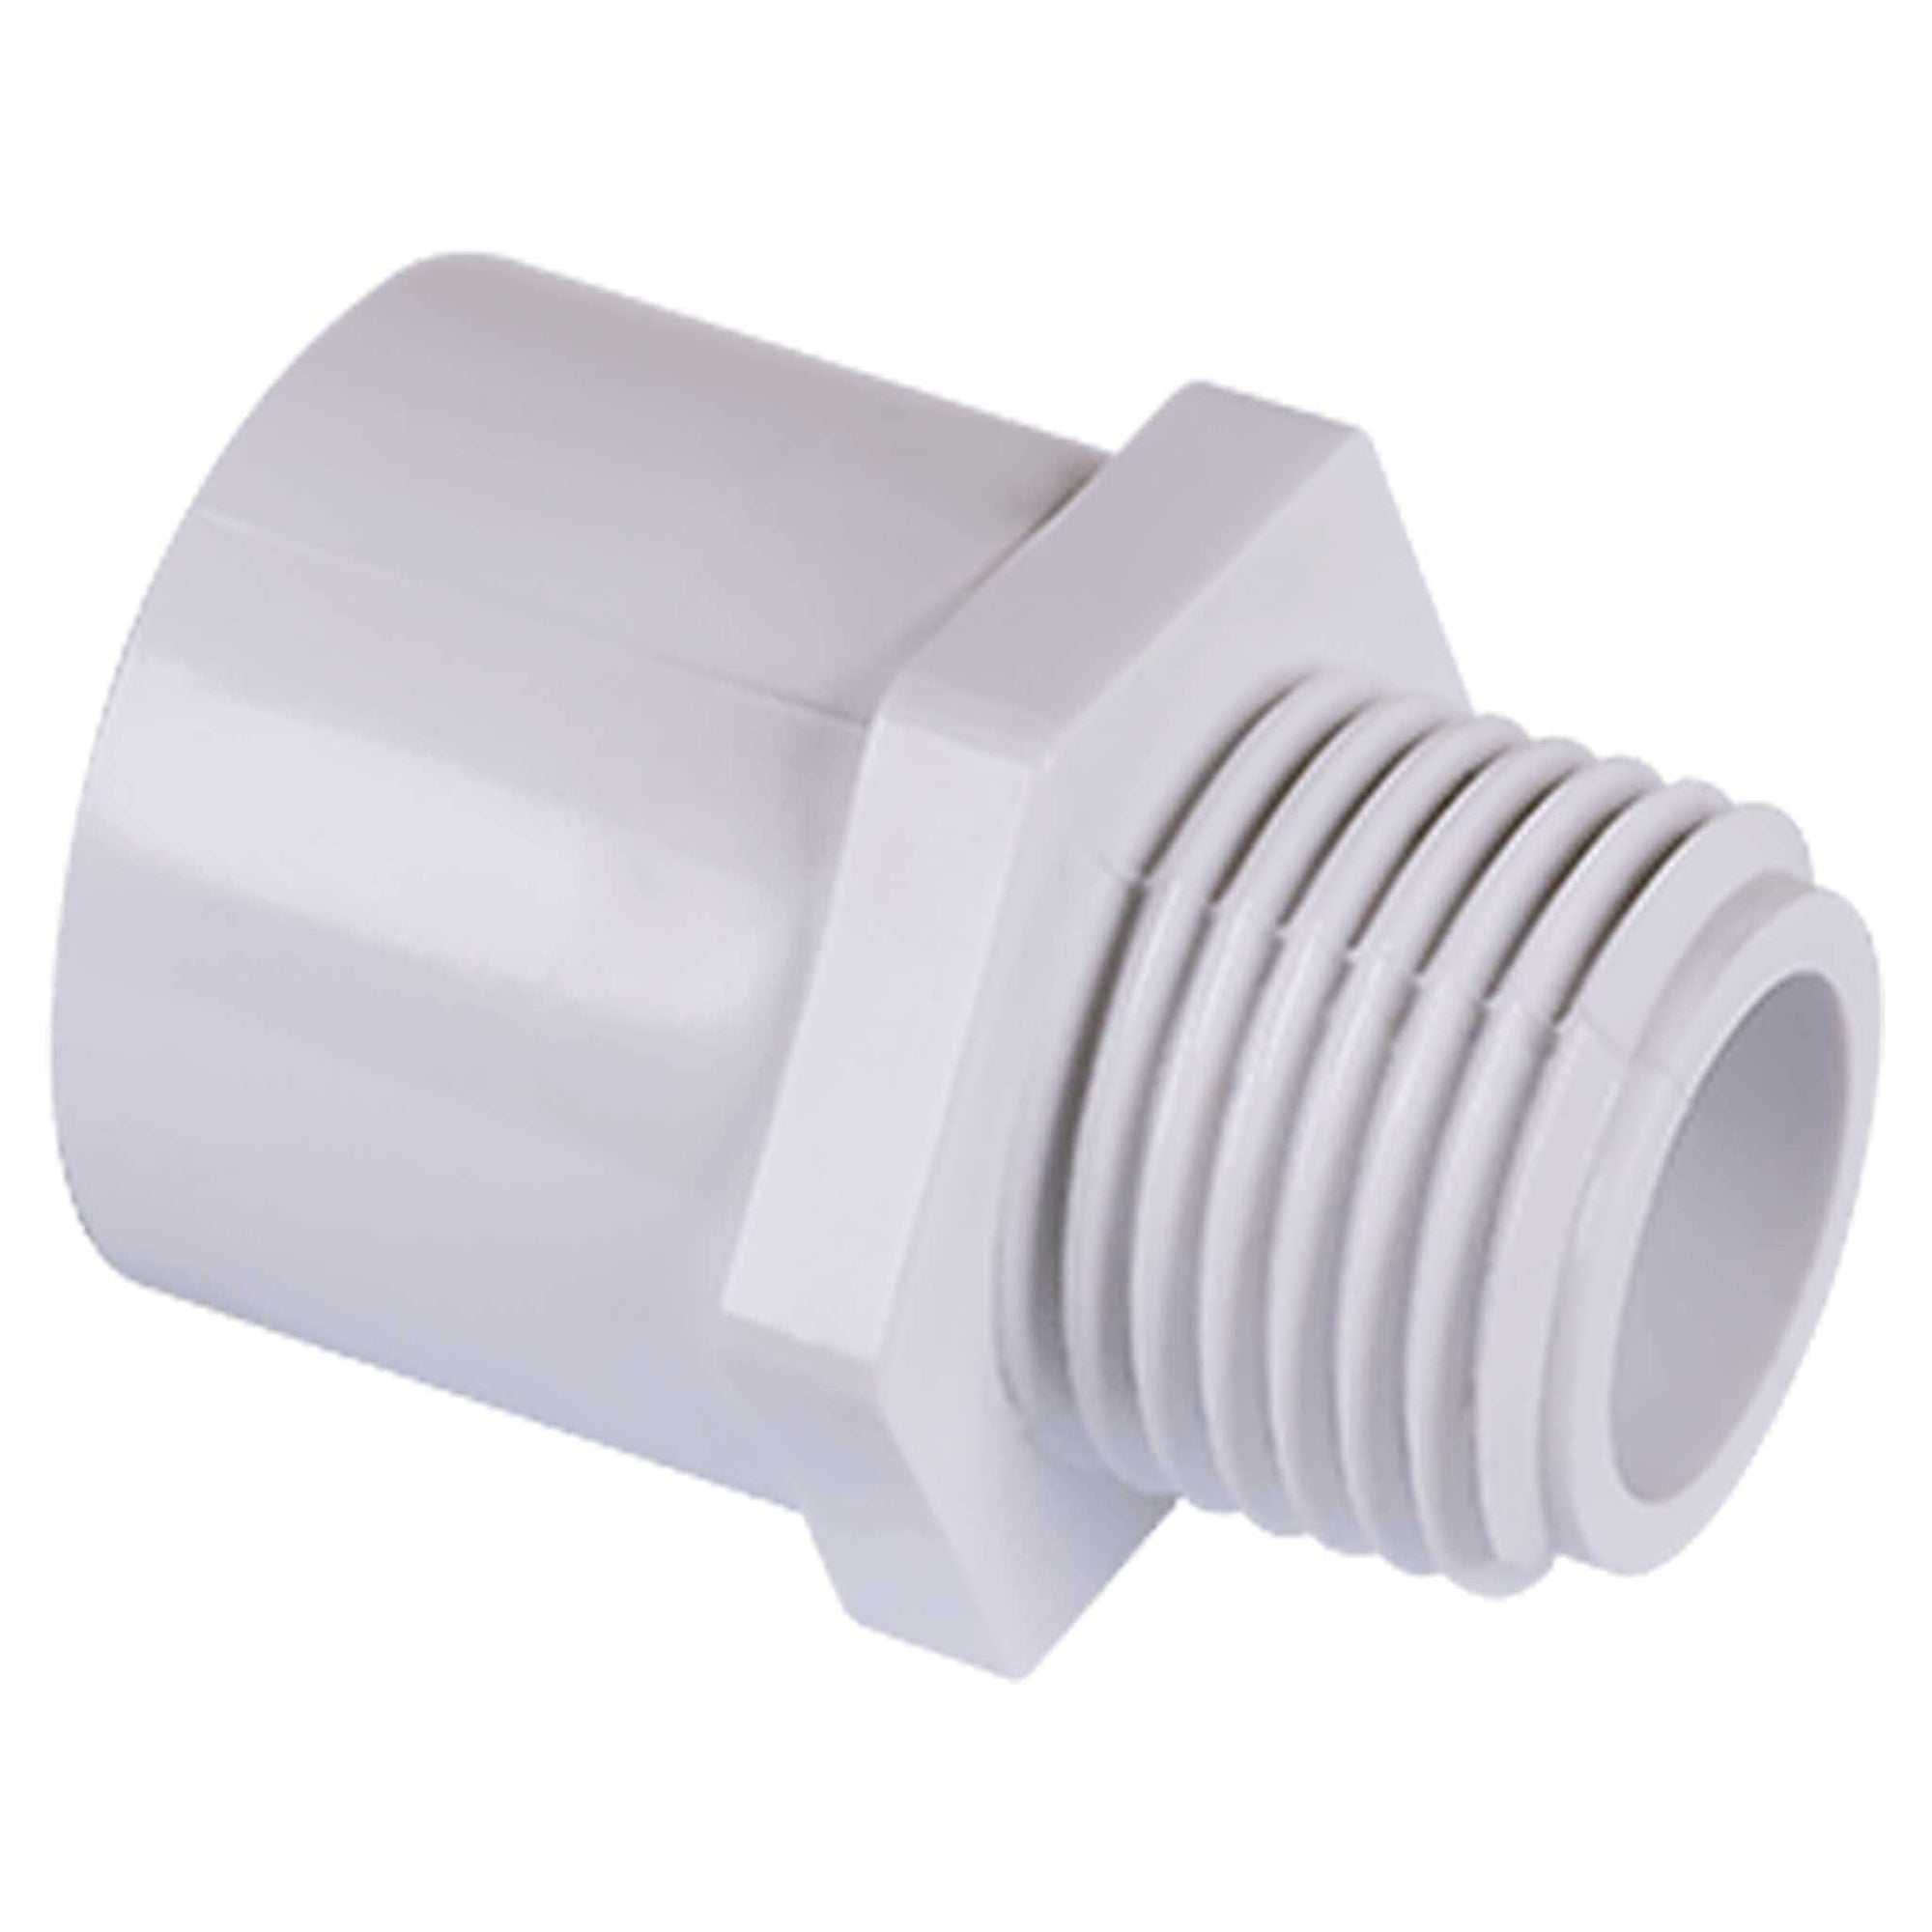 Schedule 40 PVC S x MPT Adapter